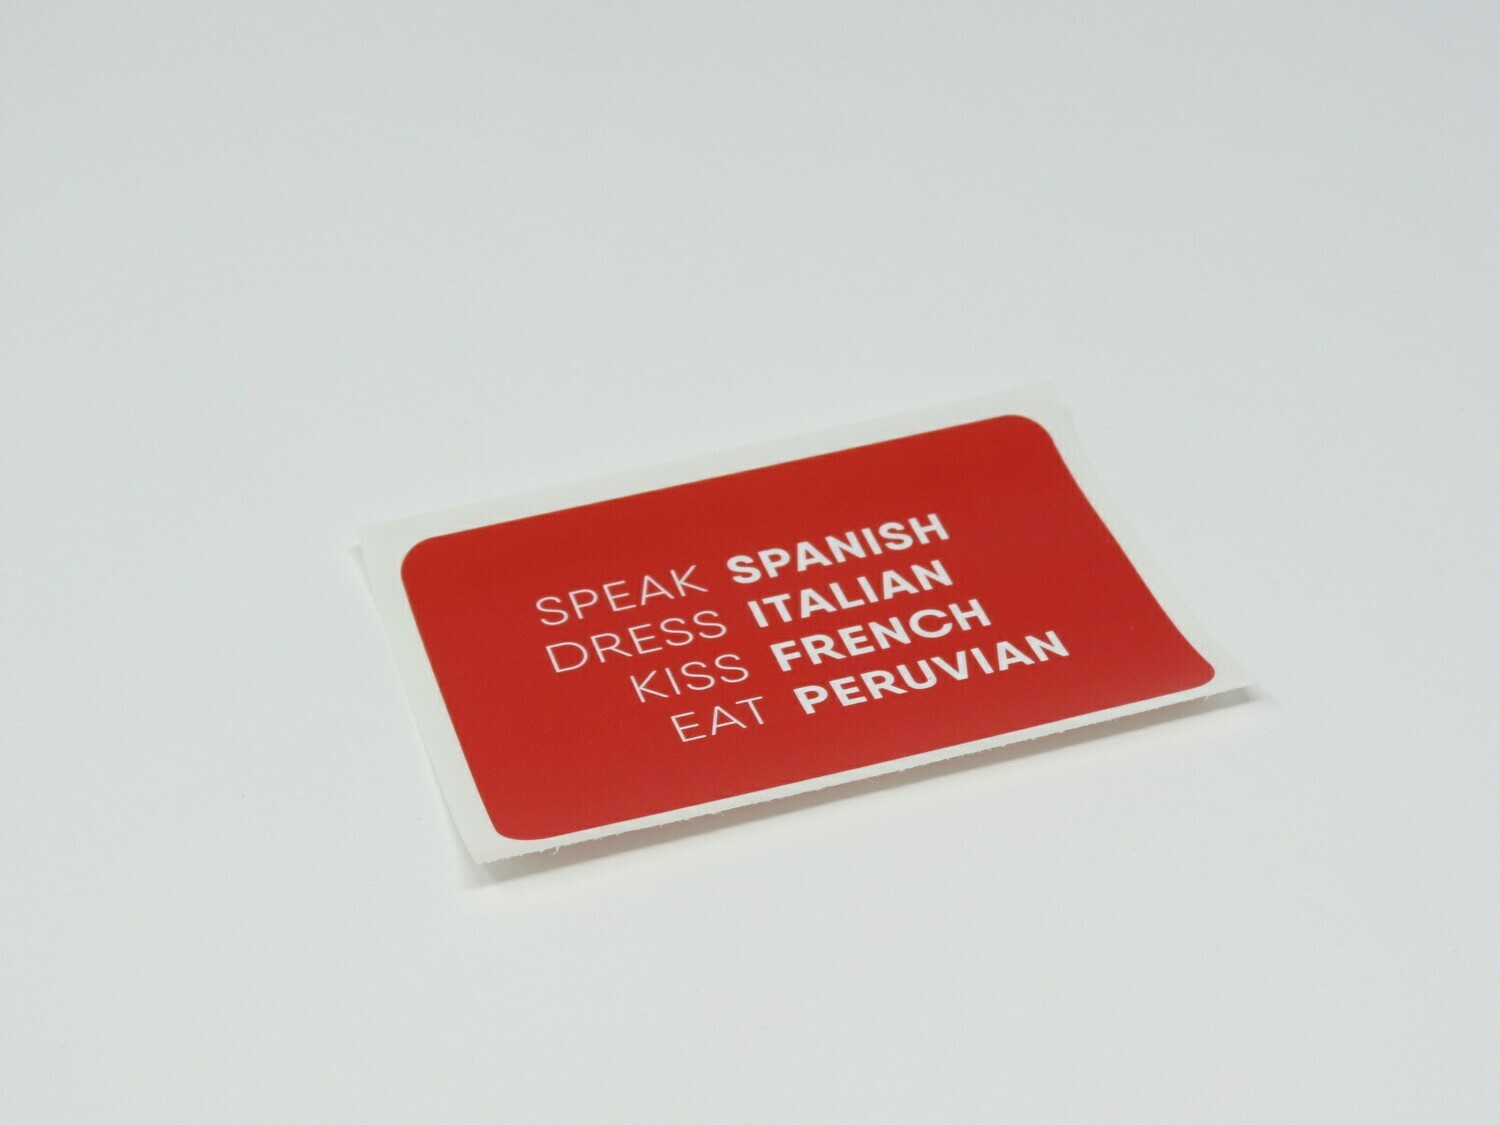 Speak Spanish, Dress Italian, Kiss French, Eat Peruvian Sticker